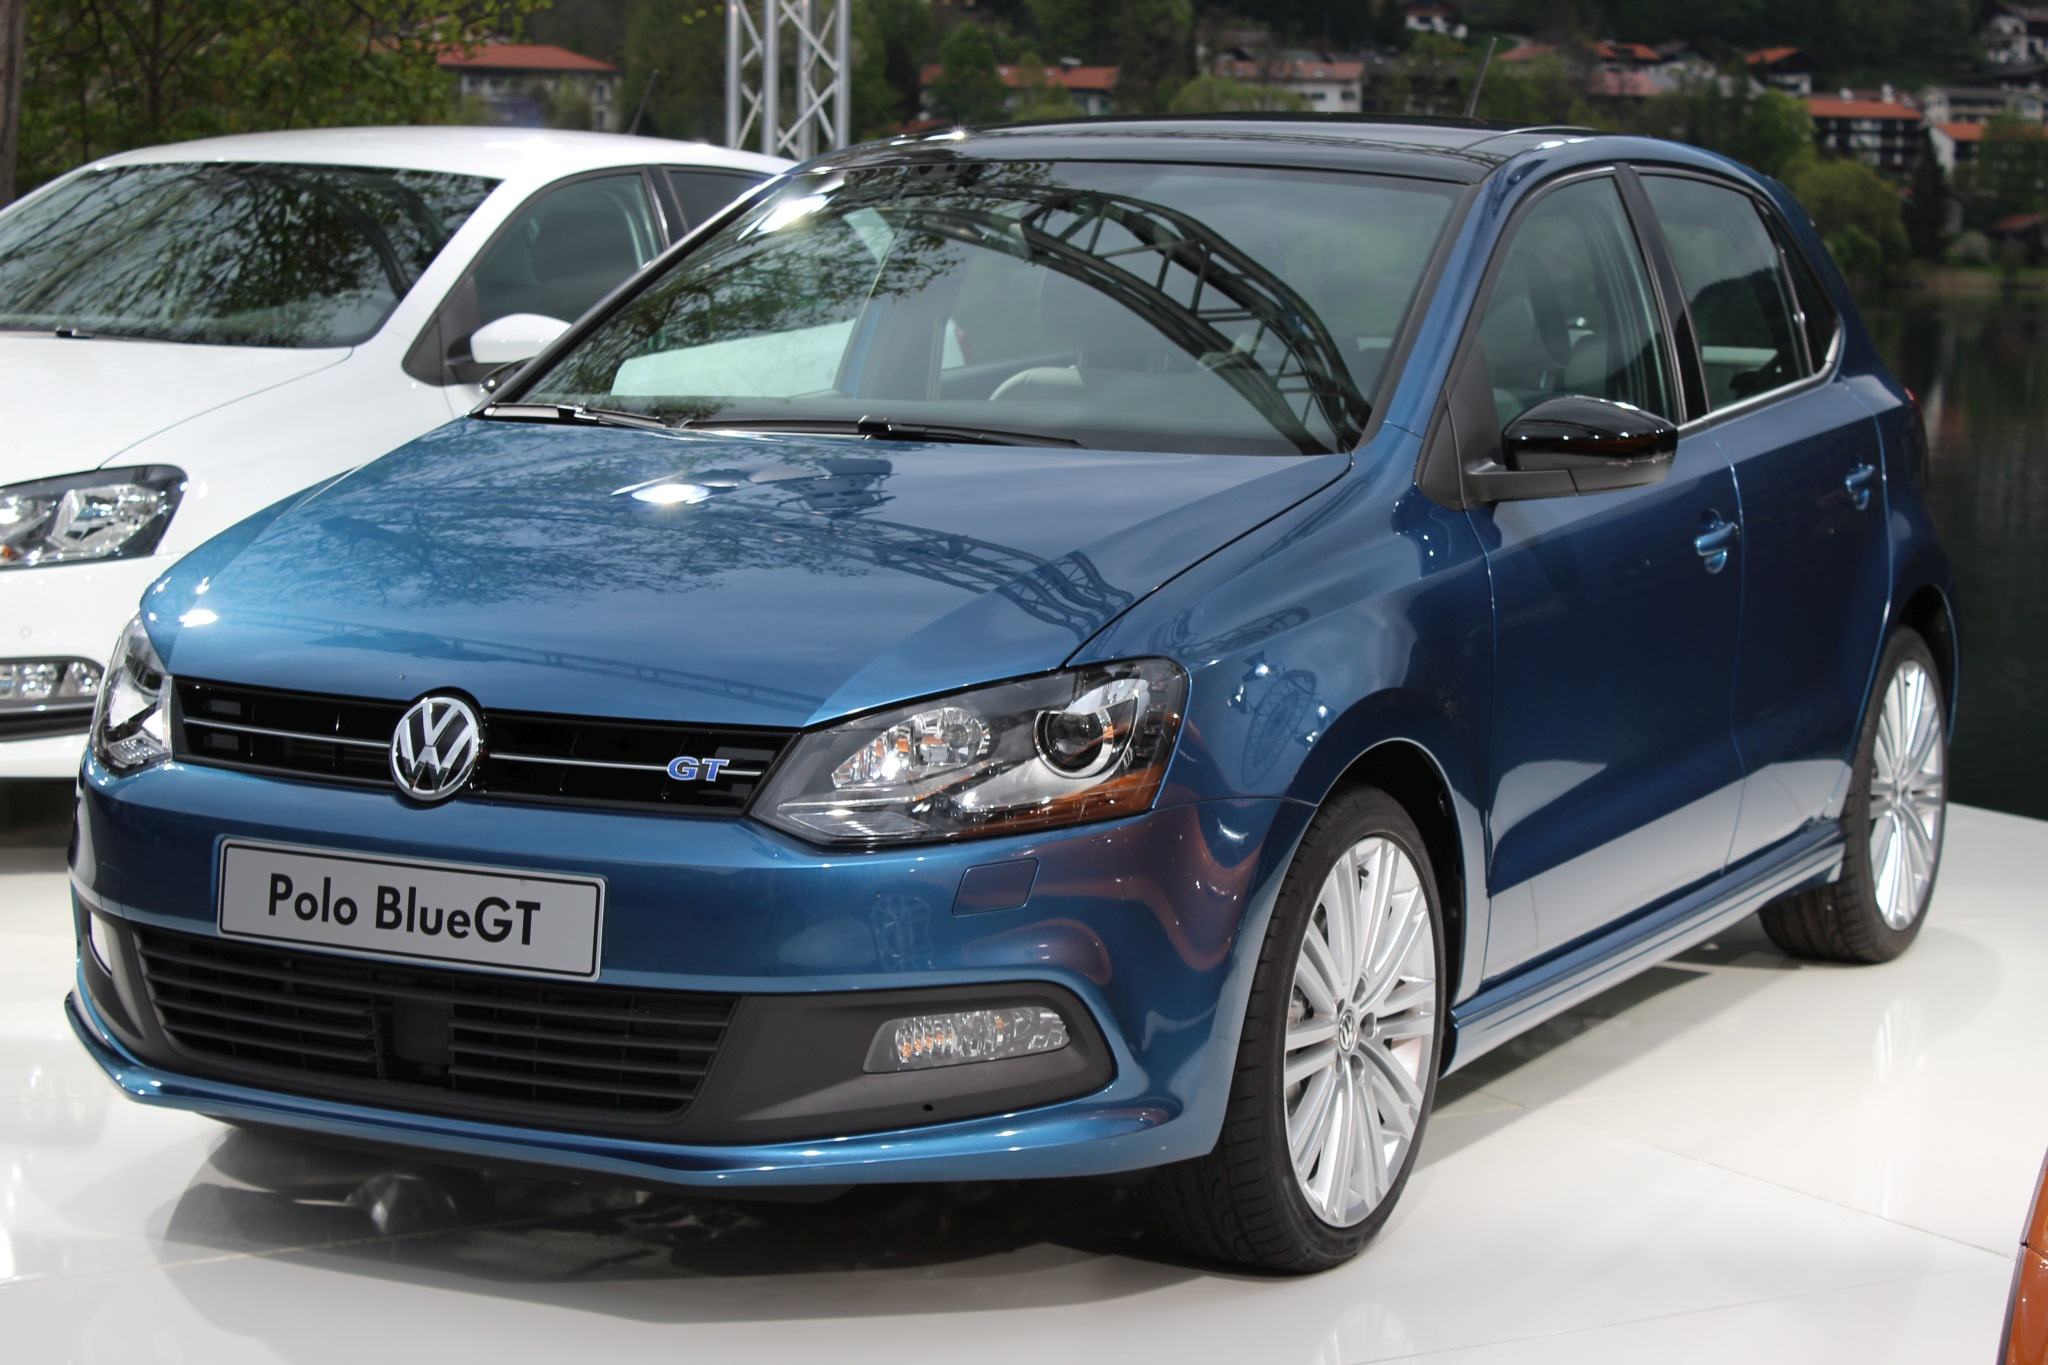 file vw polo bluegt 2014 wikimedia commons. Black Bedroom Furniture Sets. Home Design Ideas